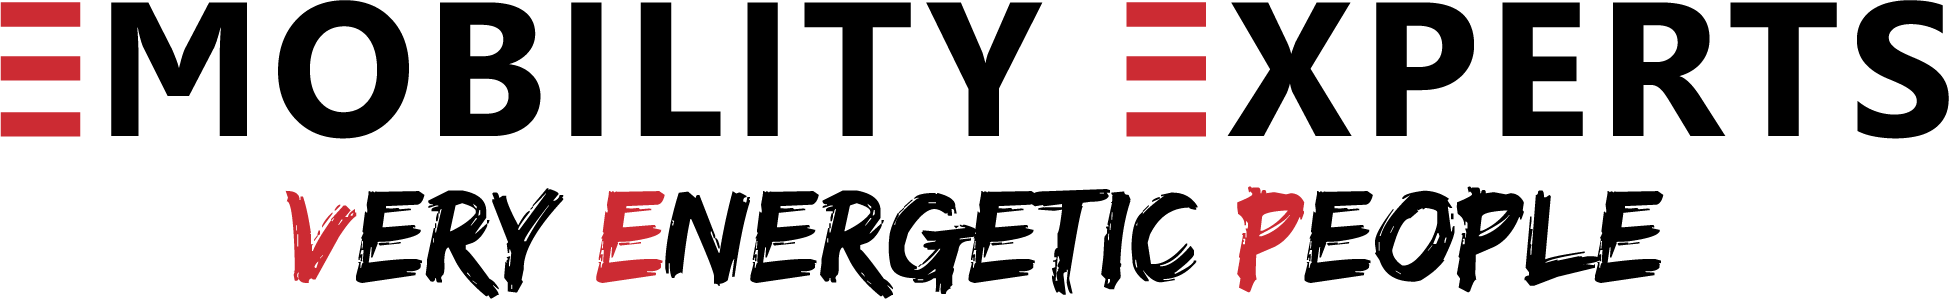 EMOBILITY EXPERTS Logo_bw.png